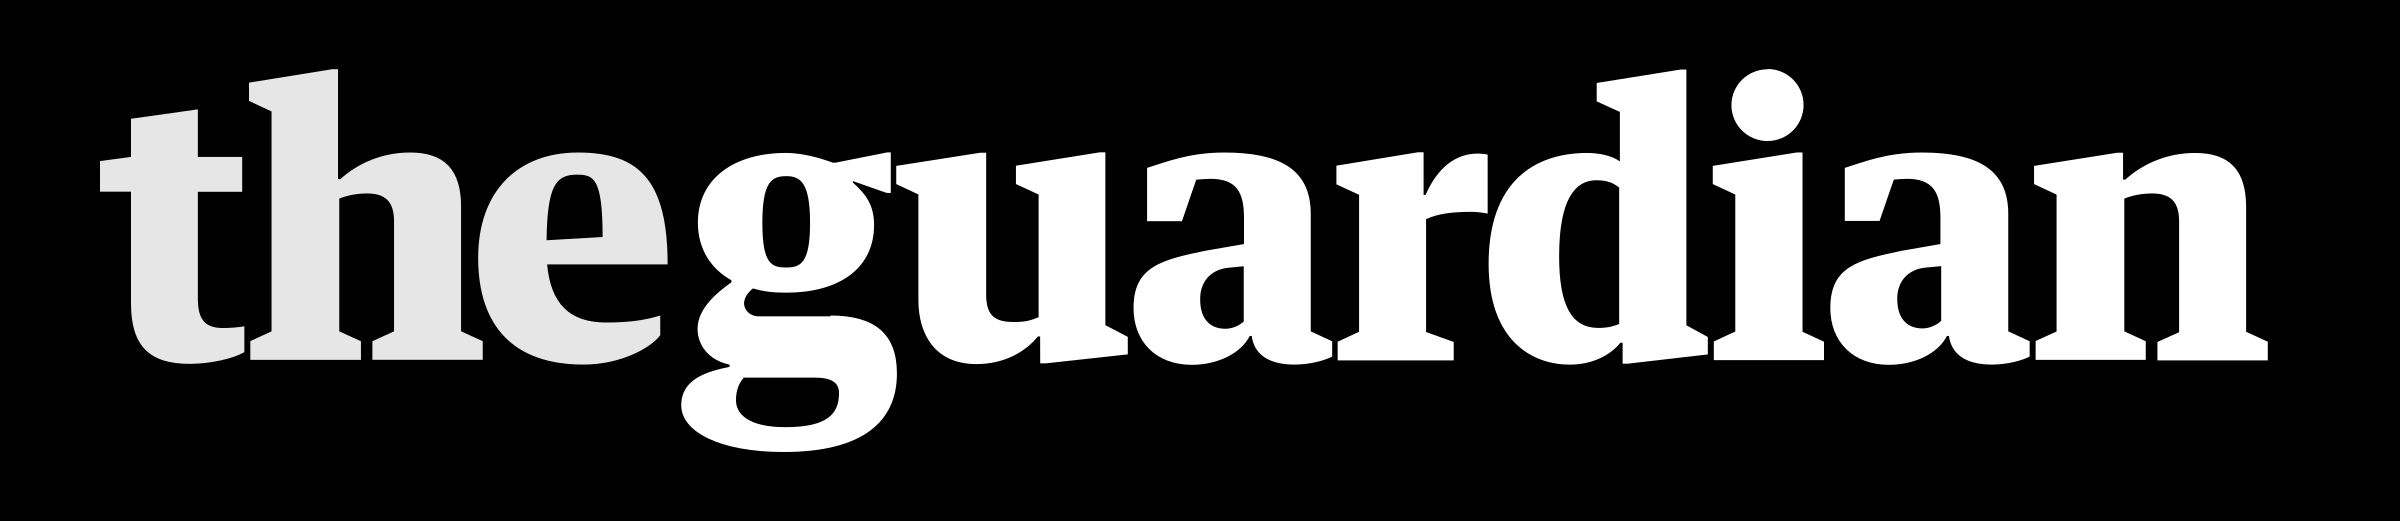 Image result for theguardian logo